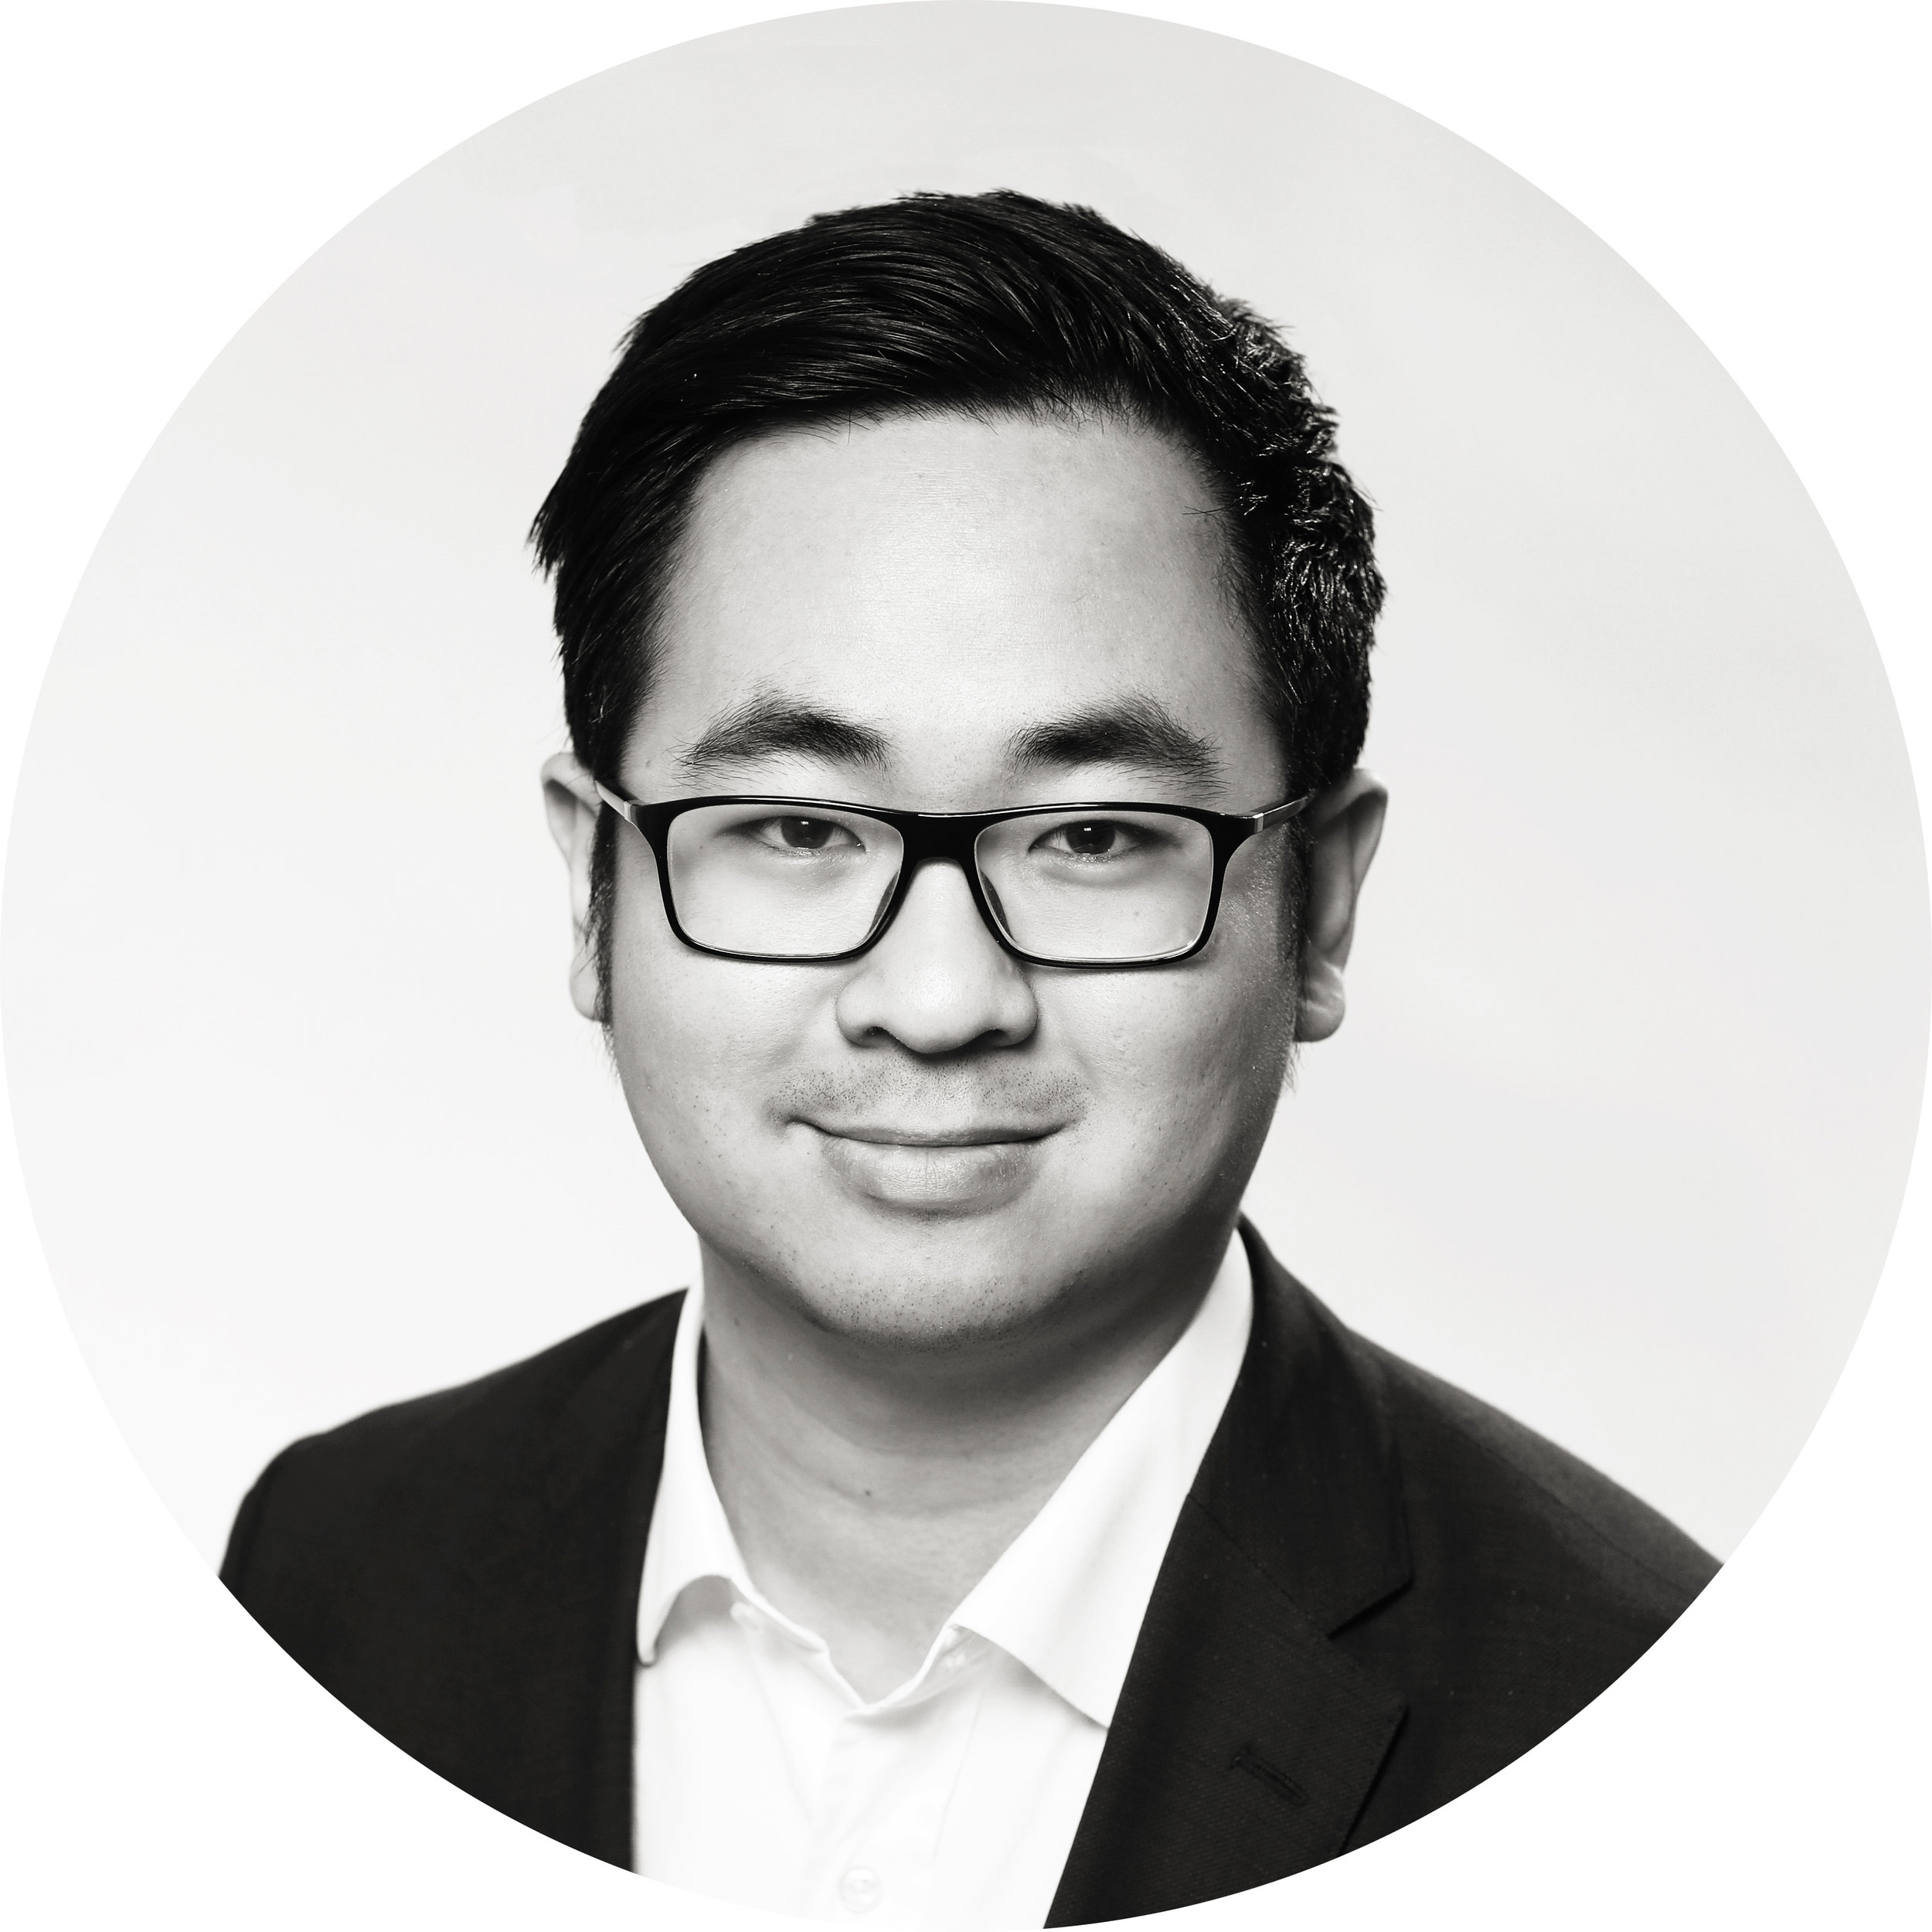 Eugene Lui  Partner  Eugene has over 9 years of aviation and financing experience. Having initially worked for Deutsche Bank Investment Banking, Eugene then moved to Investec's Structured Finance division working with the aviation team. Eugene then helped set up and grow Goshawk Aviation Limited (a US$5.0 billion aircraft lessor at the time of his departure), working across both the Commercial and Corporate Finance functions.